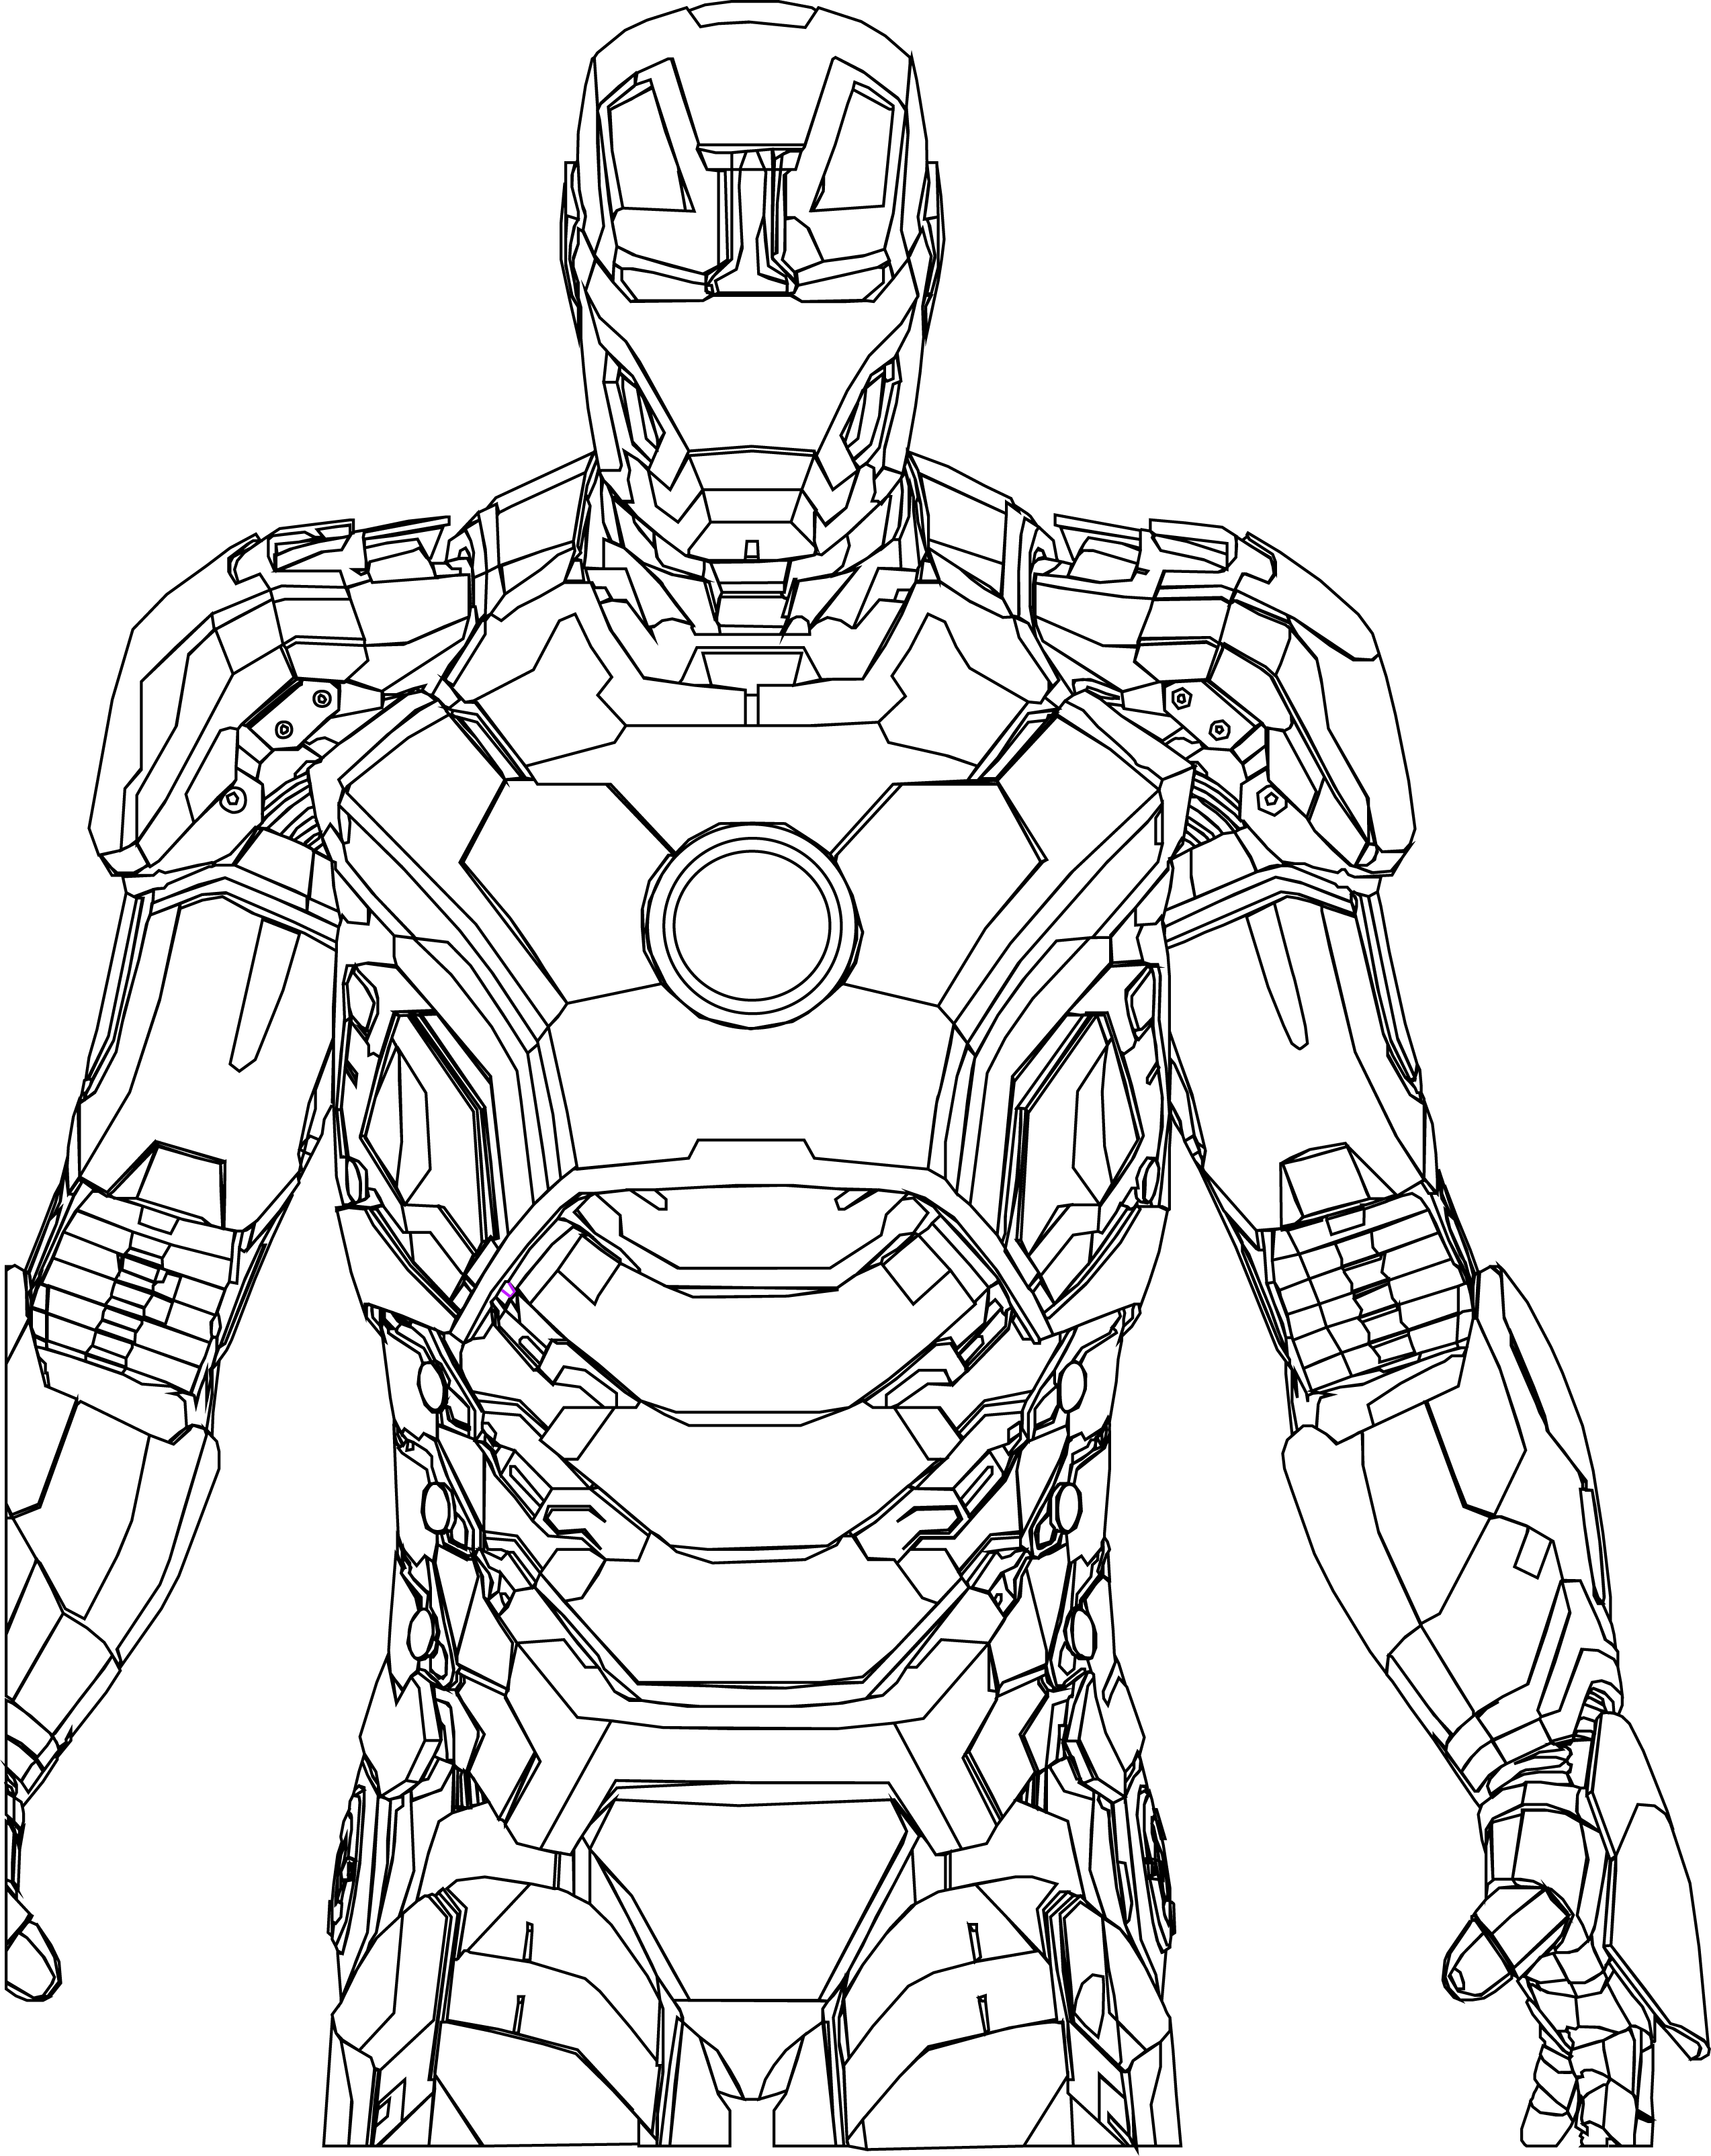 2547x3210 Iorn Man Vector Drawing Path Turned Black By Random Kell